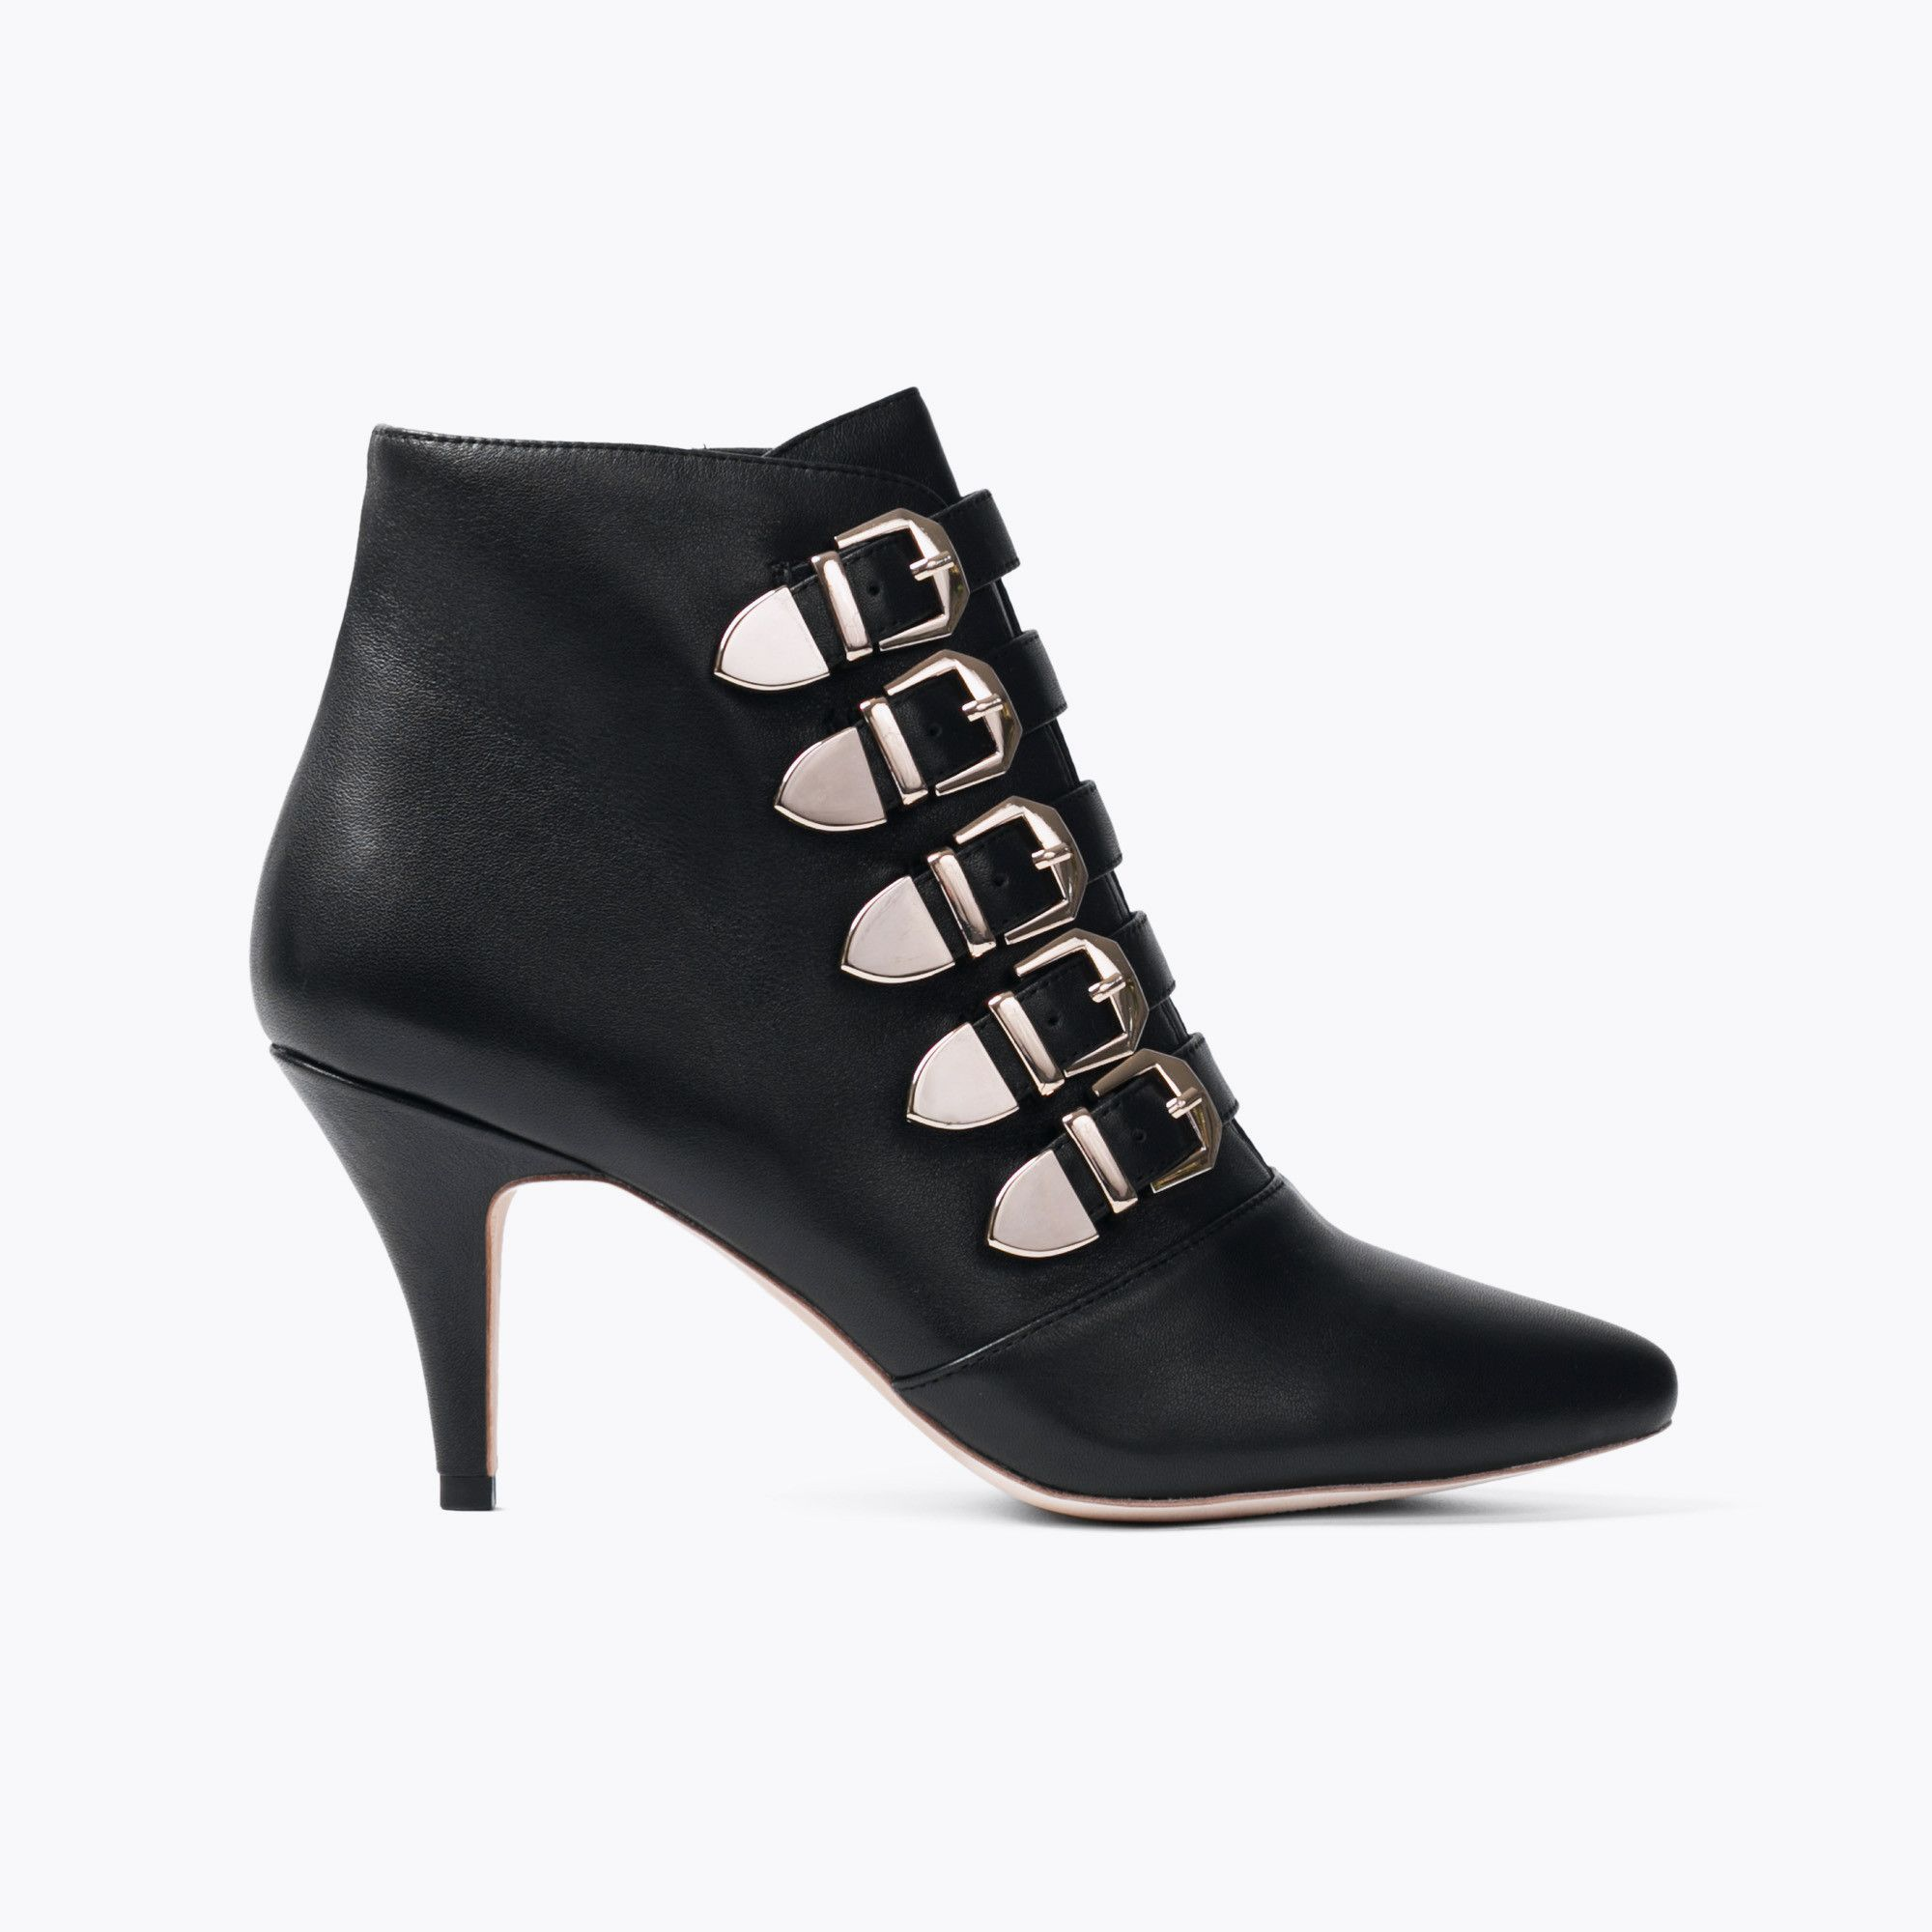 2ad8eadf3ef2 Strap is a biker-inspired ankle boot designed in butter soft black leather  with a sleek pointed silhouette. The buckle strap and studs combine for a  ...